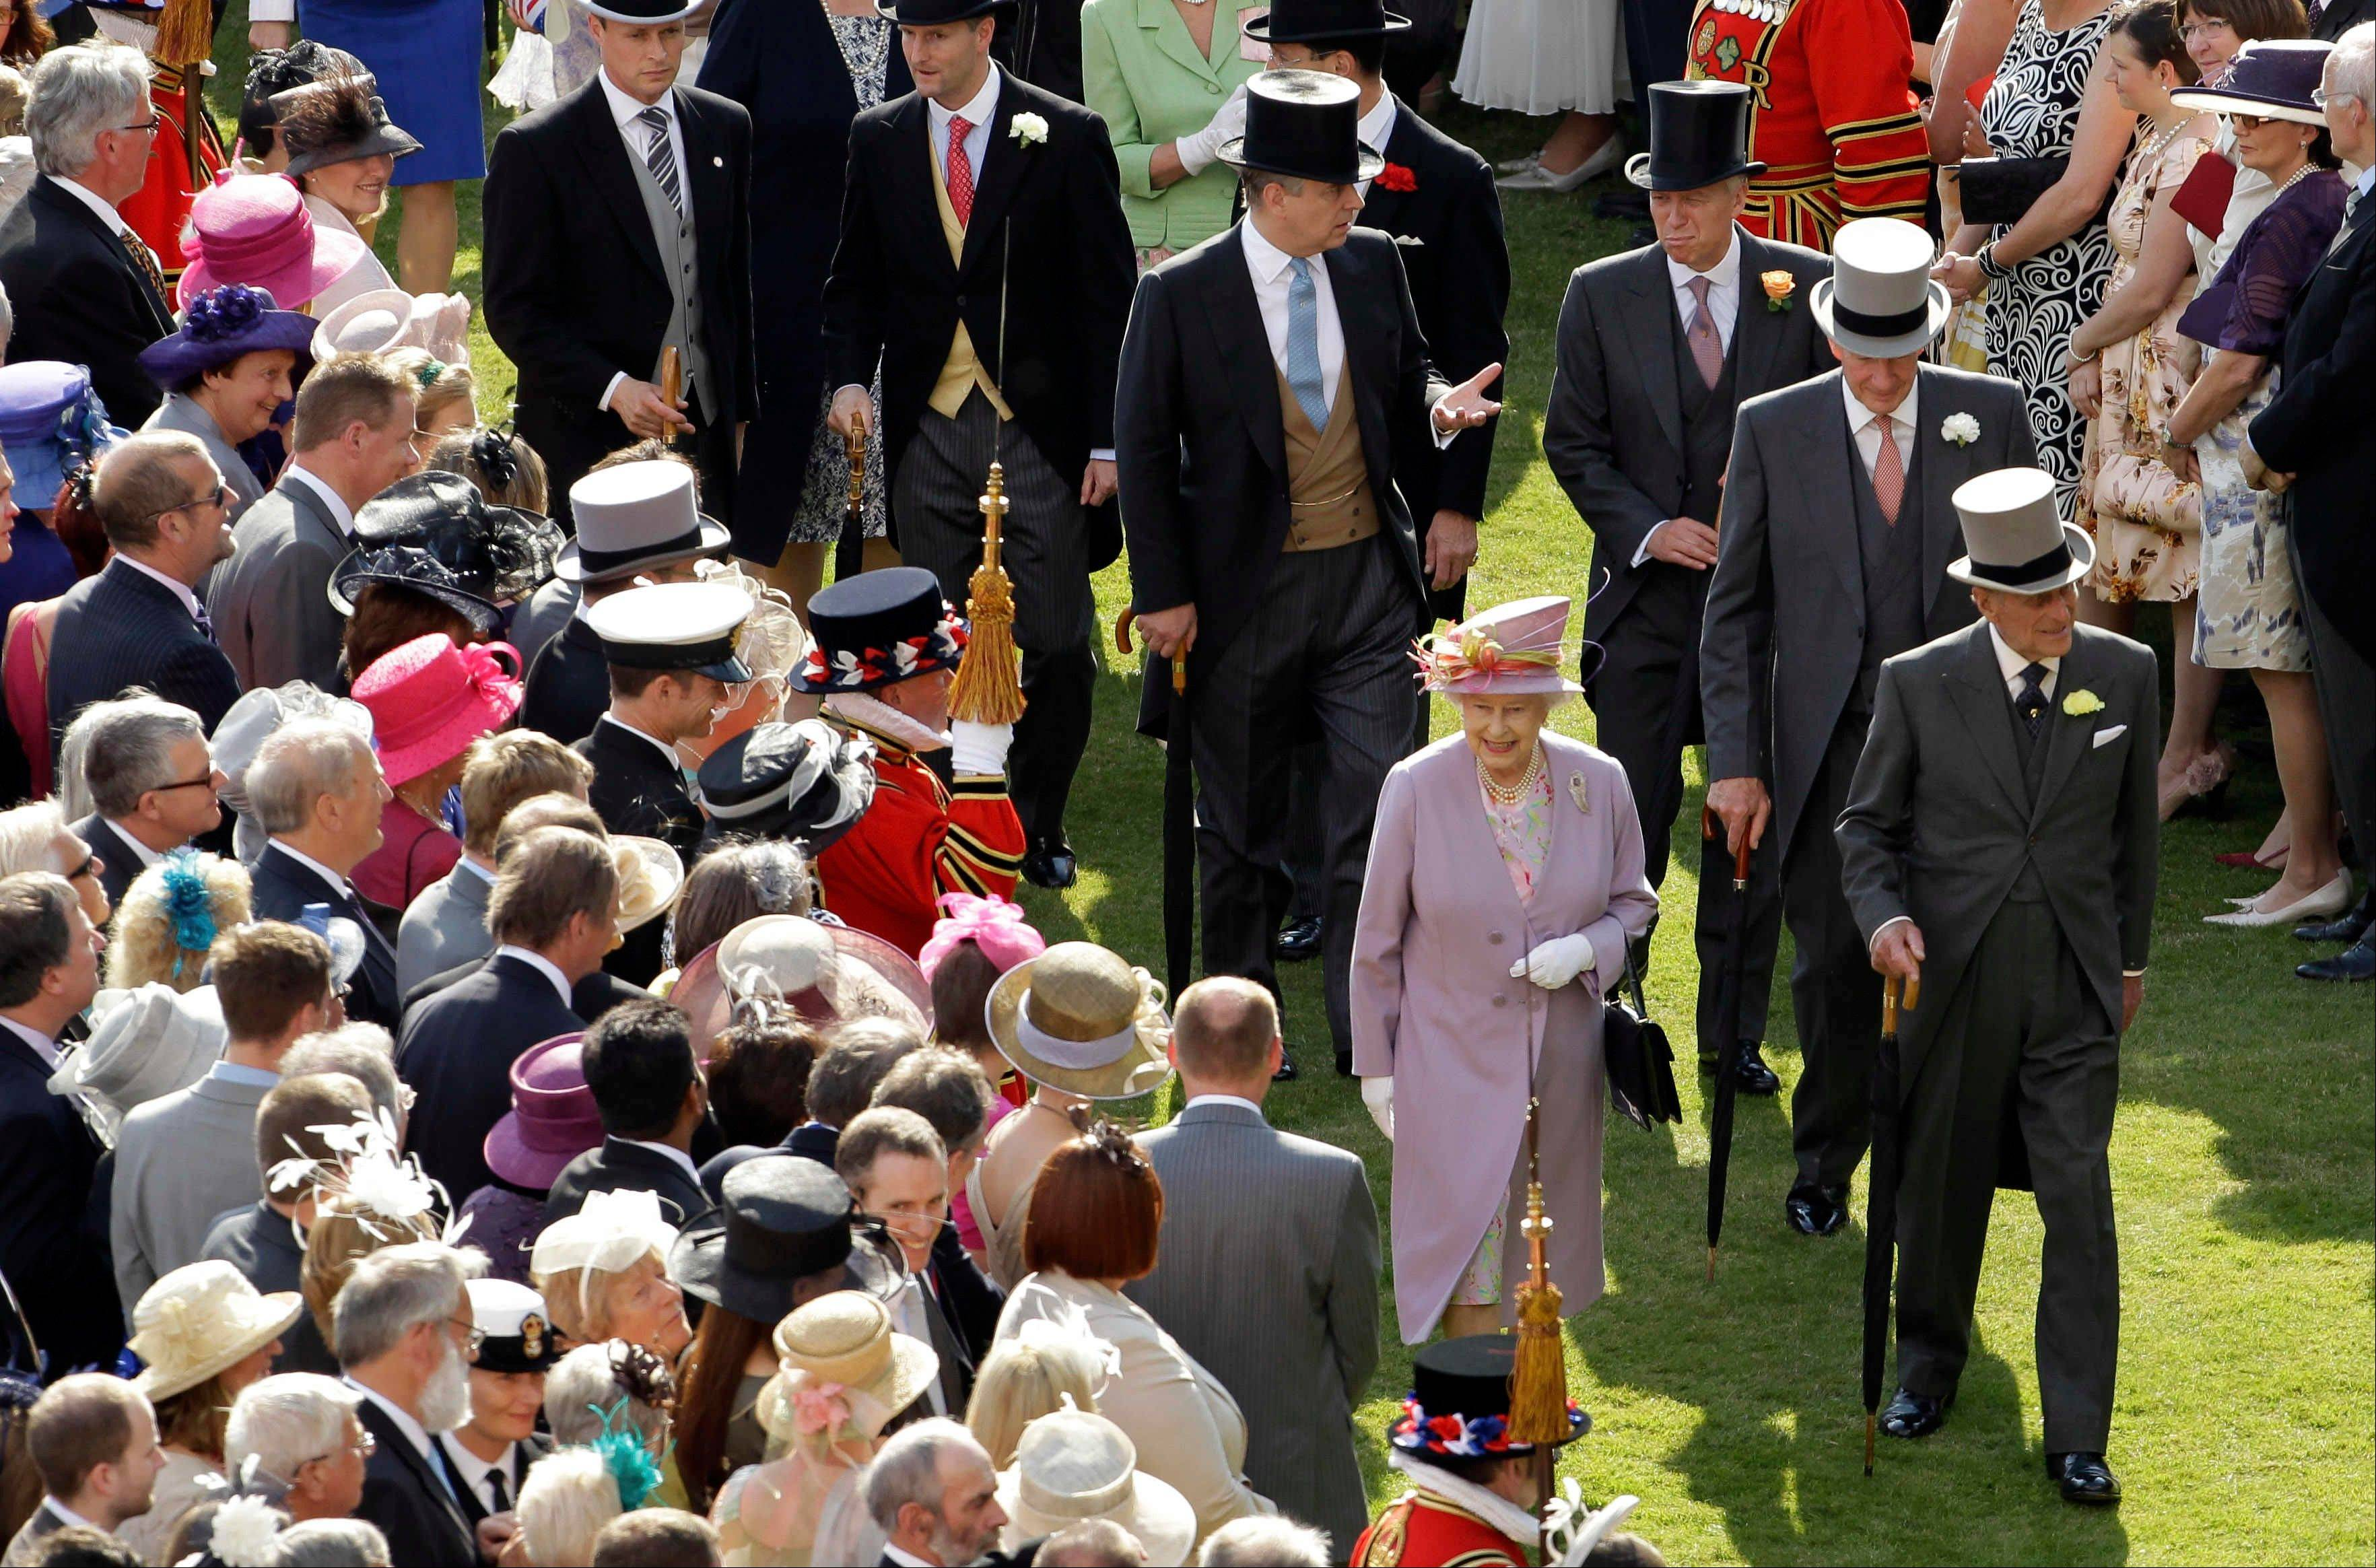 Britain�s Queen Elizabeth II walk past guests during the annual summer garden party held at Buckingham Palace in London during a typical Buckingham Palace garden party, which served around 27,000 cups of tea, 20,000 sandwiches and 20,000 slices of cake. It�s unlikely such opulence will be discontinued, despite the queen getting a pay cut.